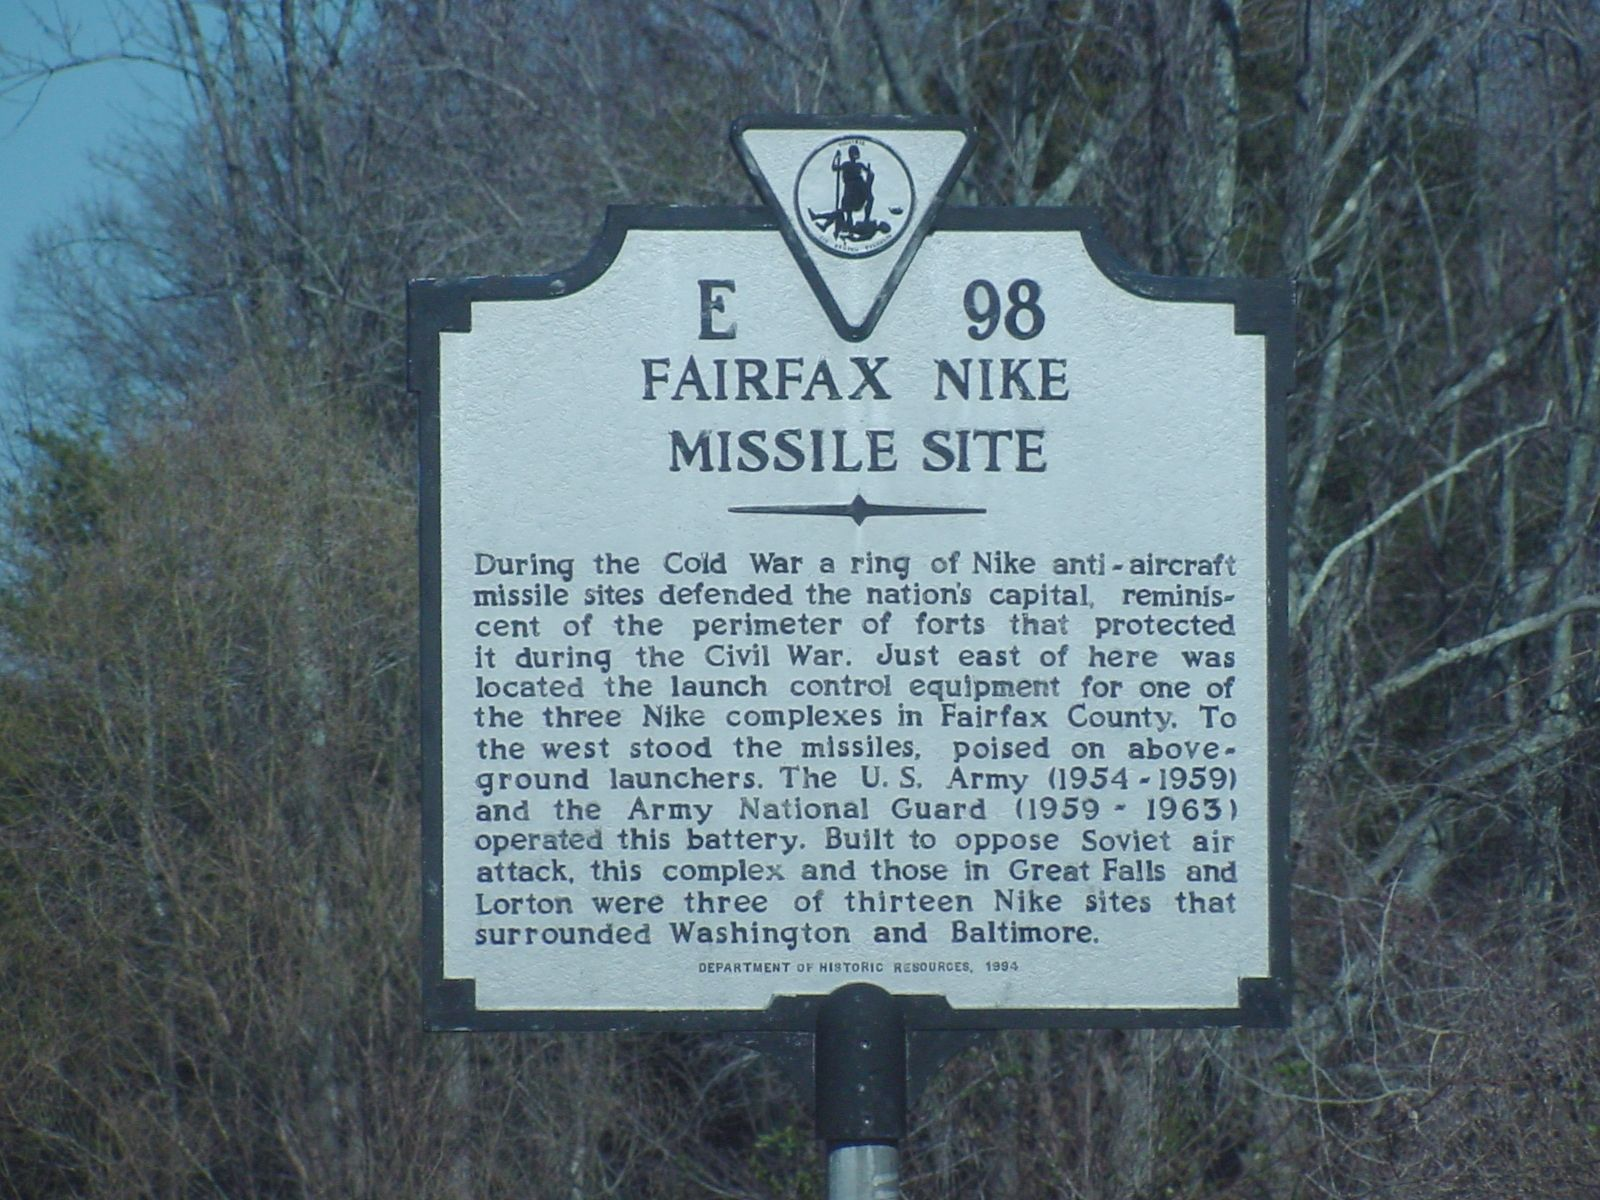 Fairfax Nike Missile Site Marker by J. J. Prats on HMDB.org (reproduced under Fair Use)